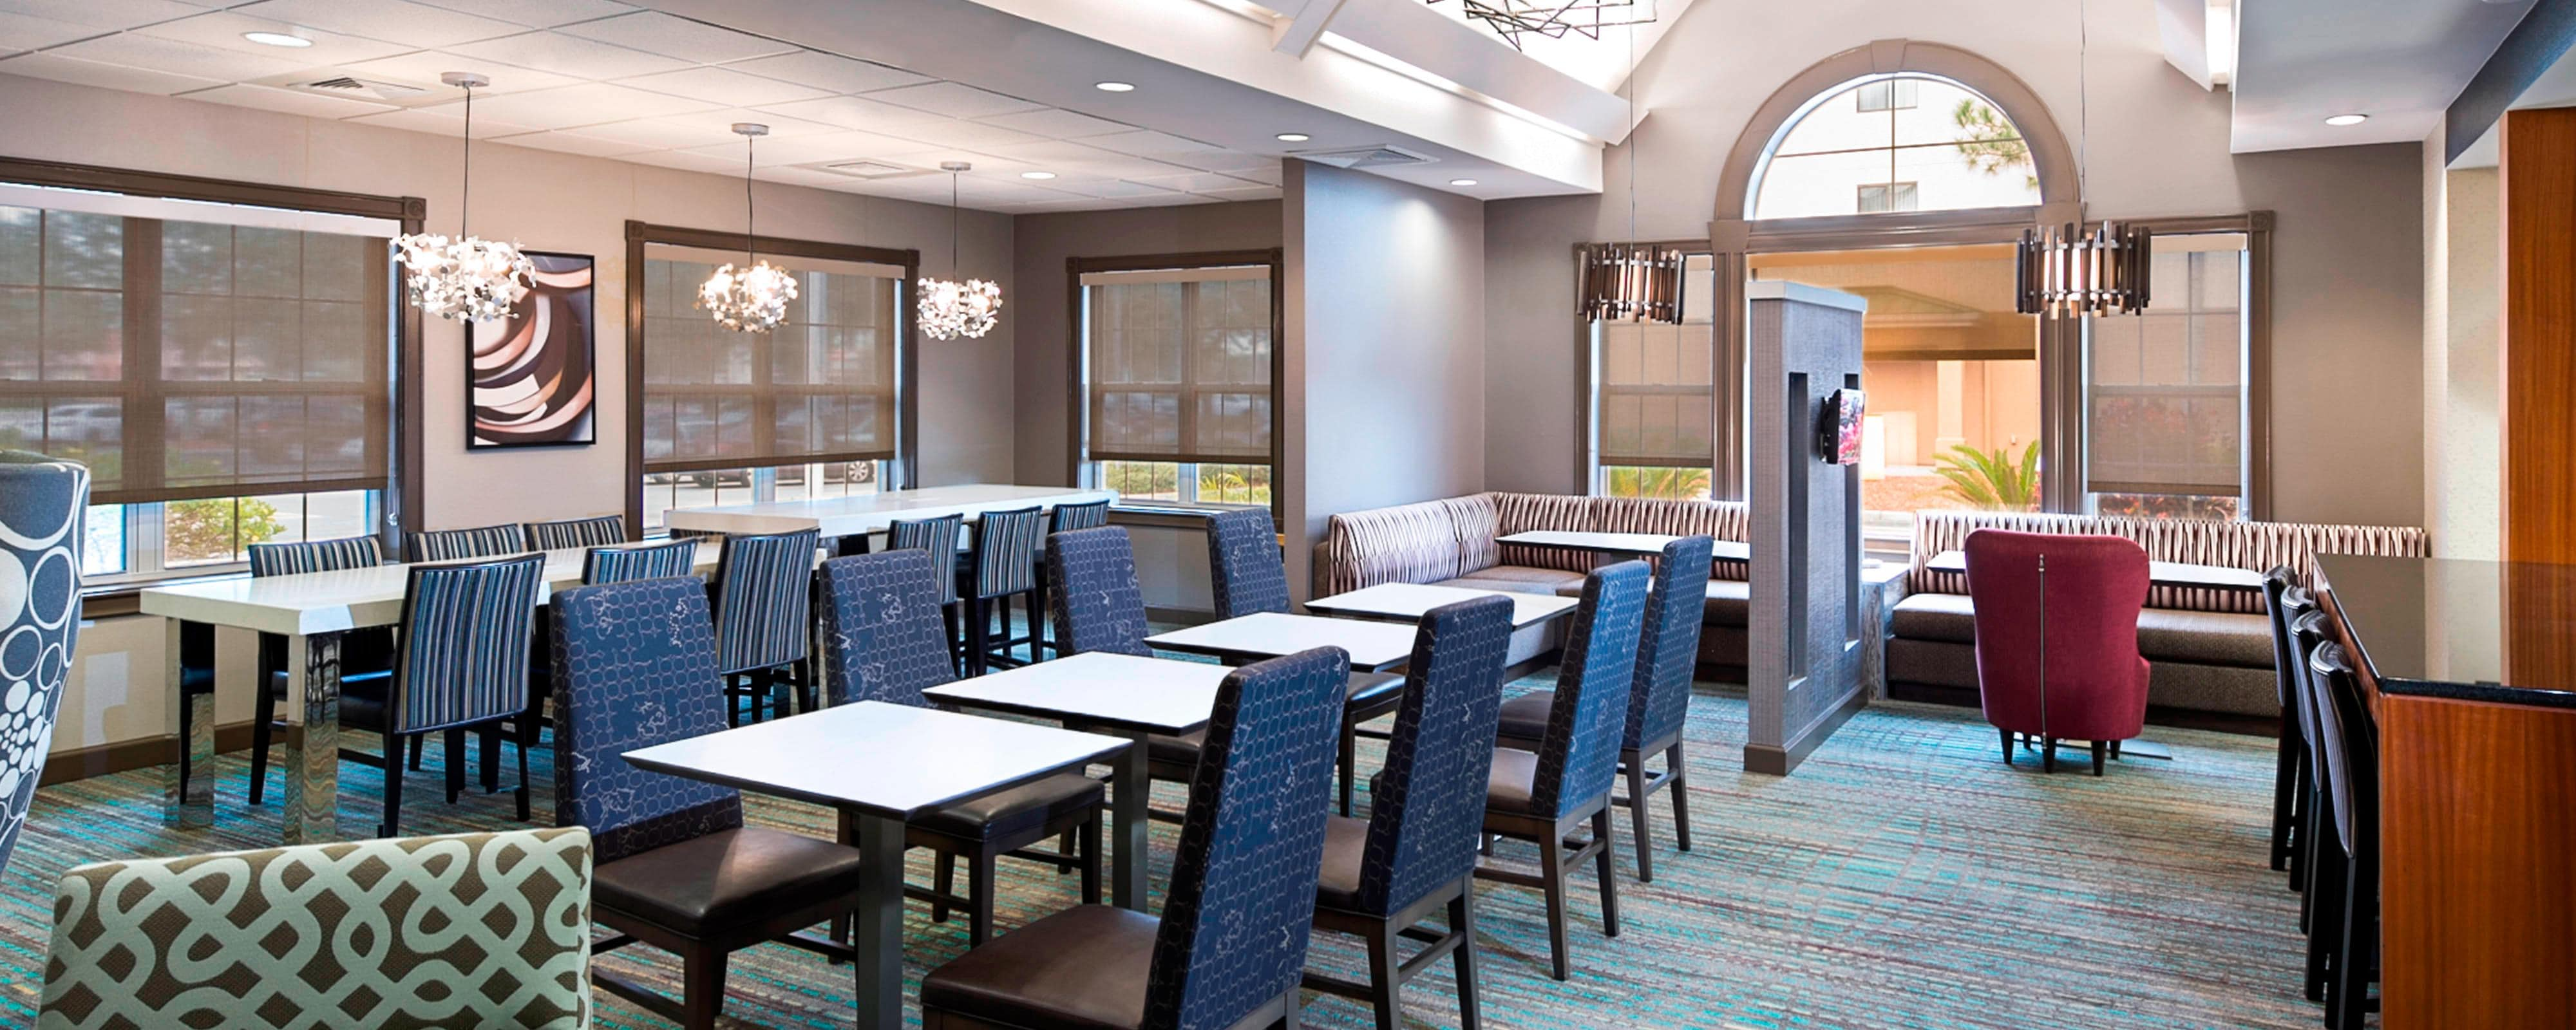 Residence Inn Lakeland dining area